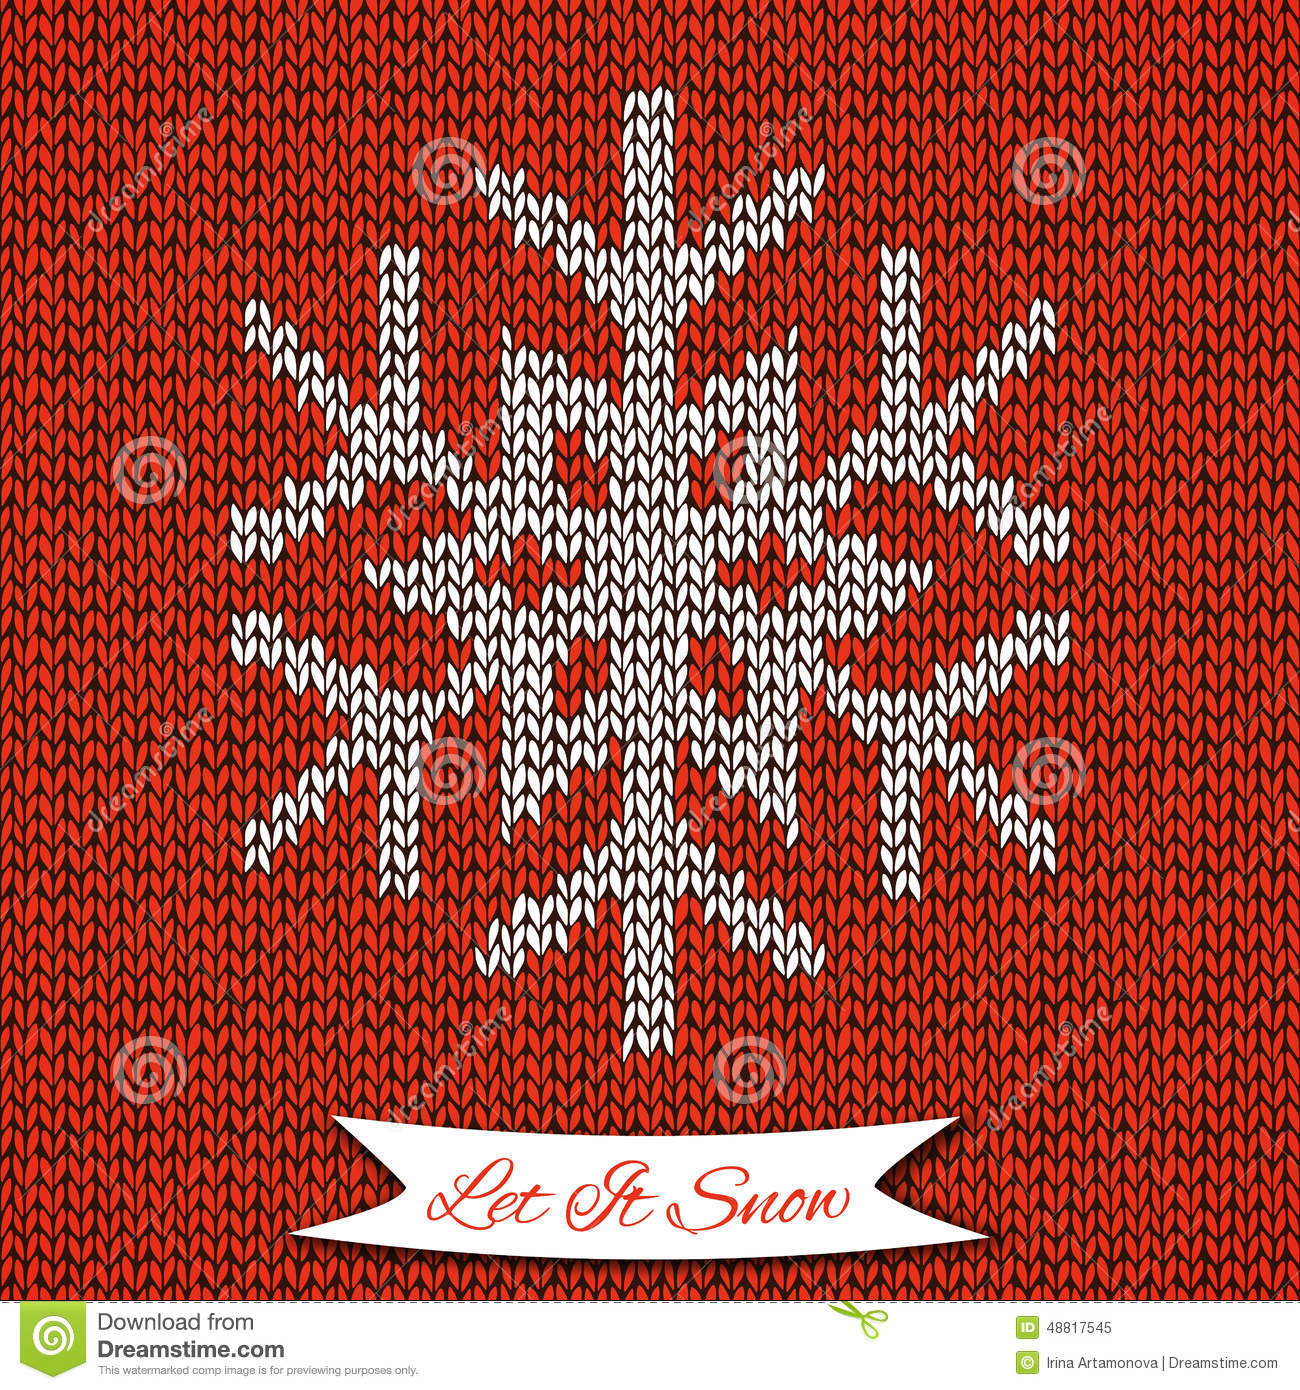 Snowflake Jumper Knitting Pattern : Seamless Pattern With Knitted Snowflake Stock Vector - Image: 48817545